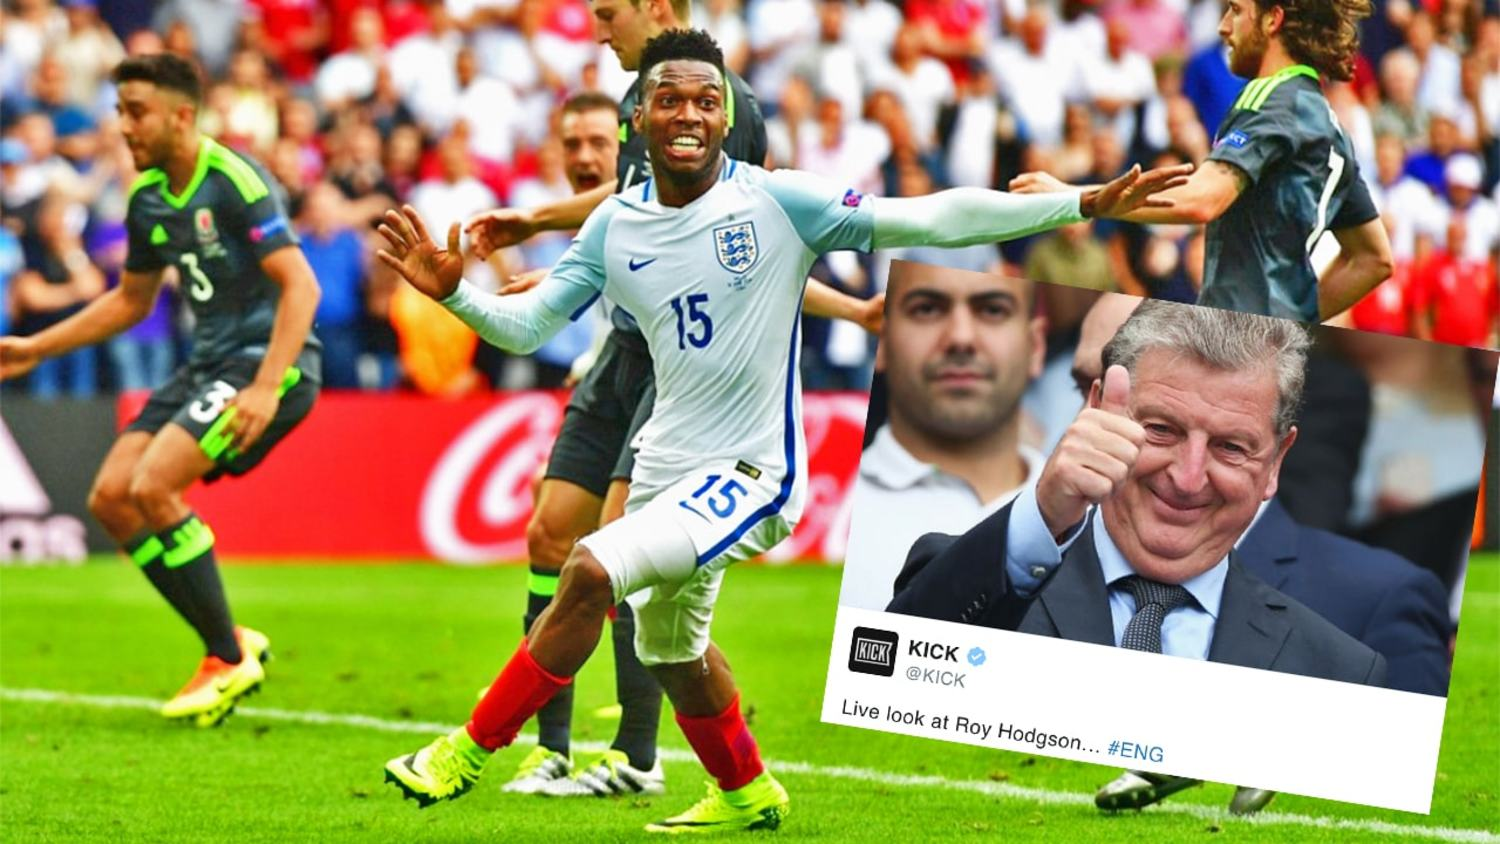 How the Internet Reacted to Sturridge's Last Minute Winner vs Wales